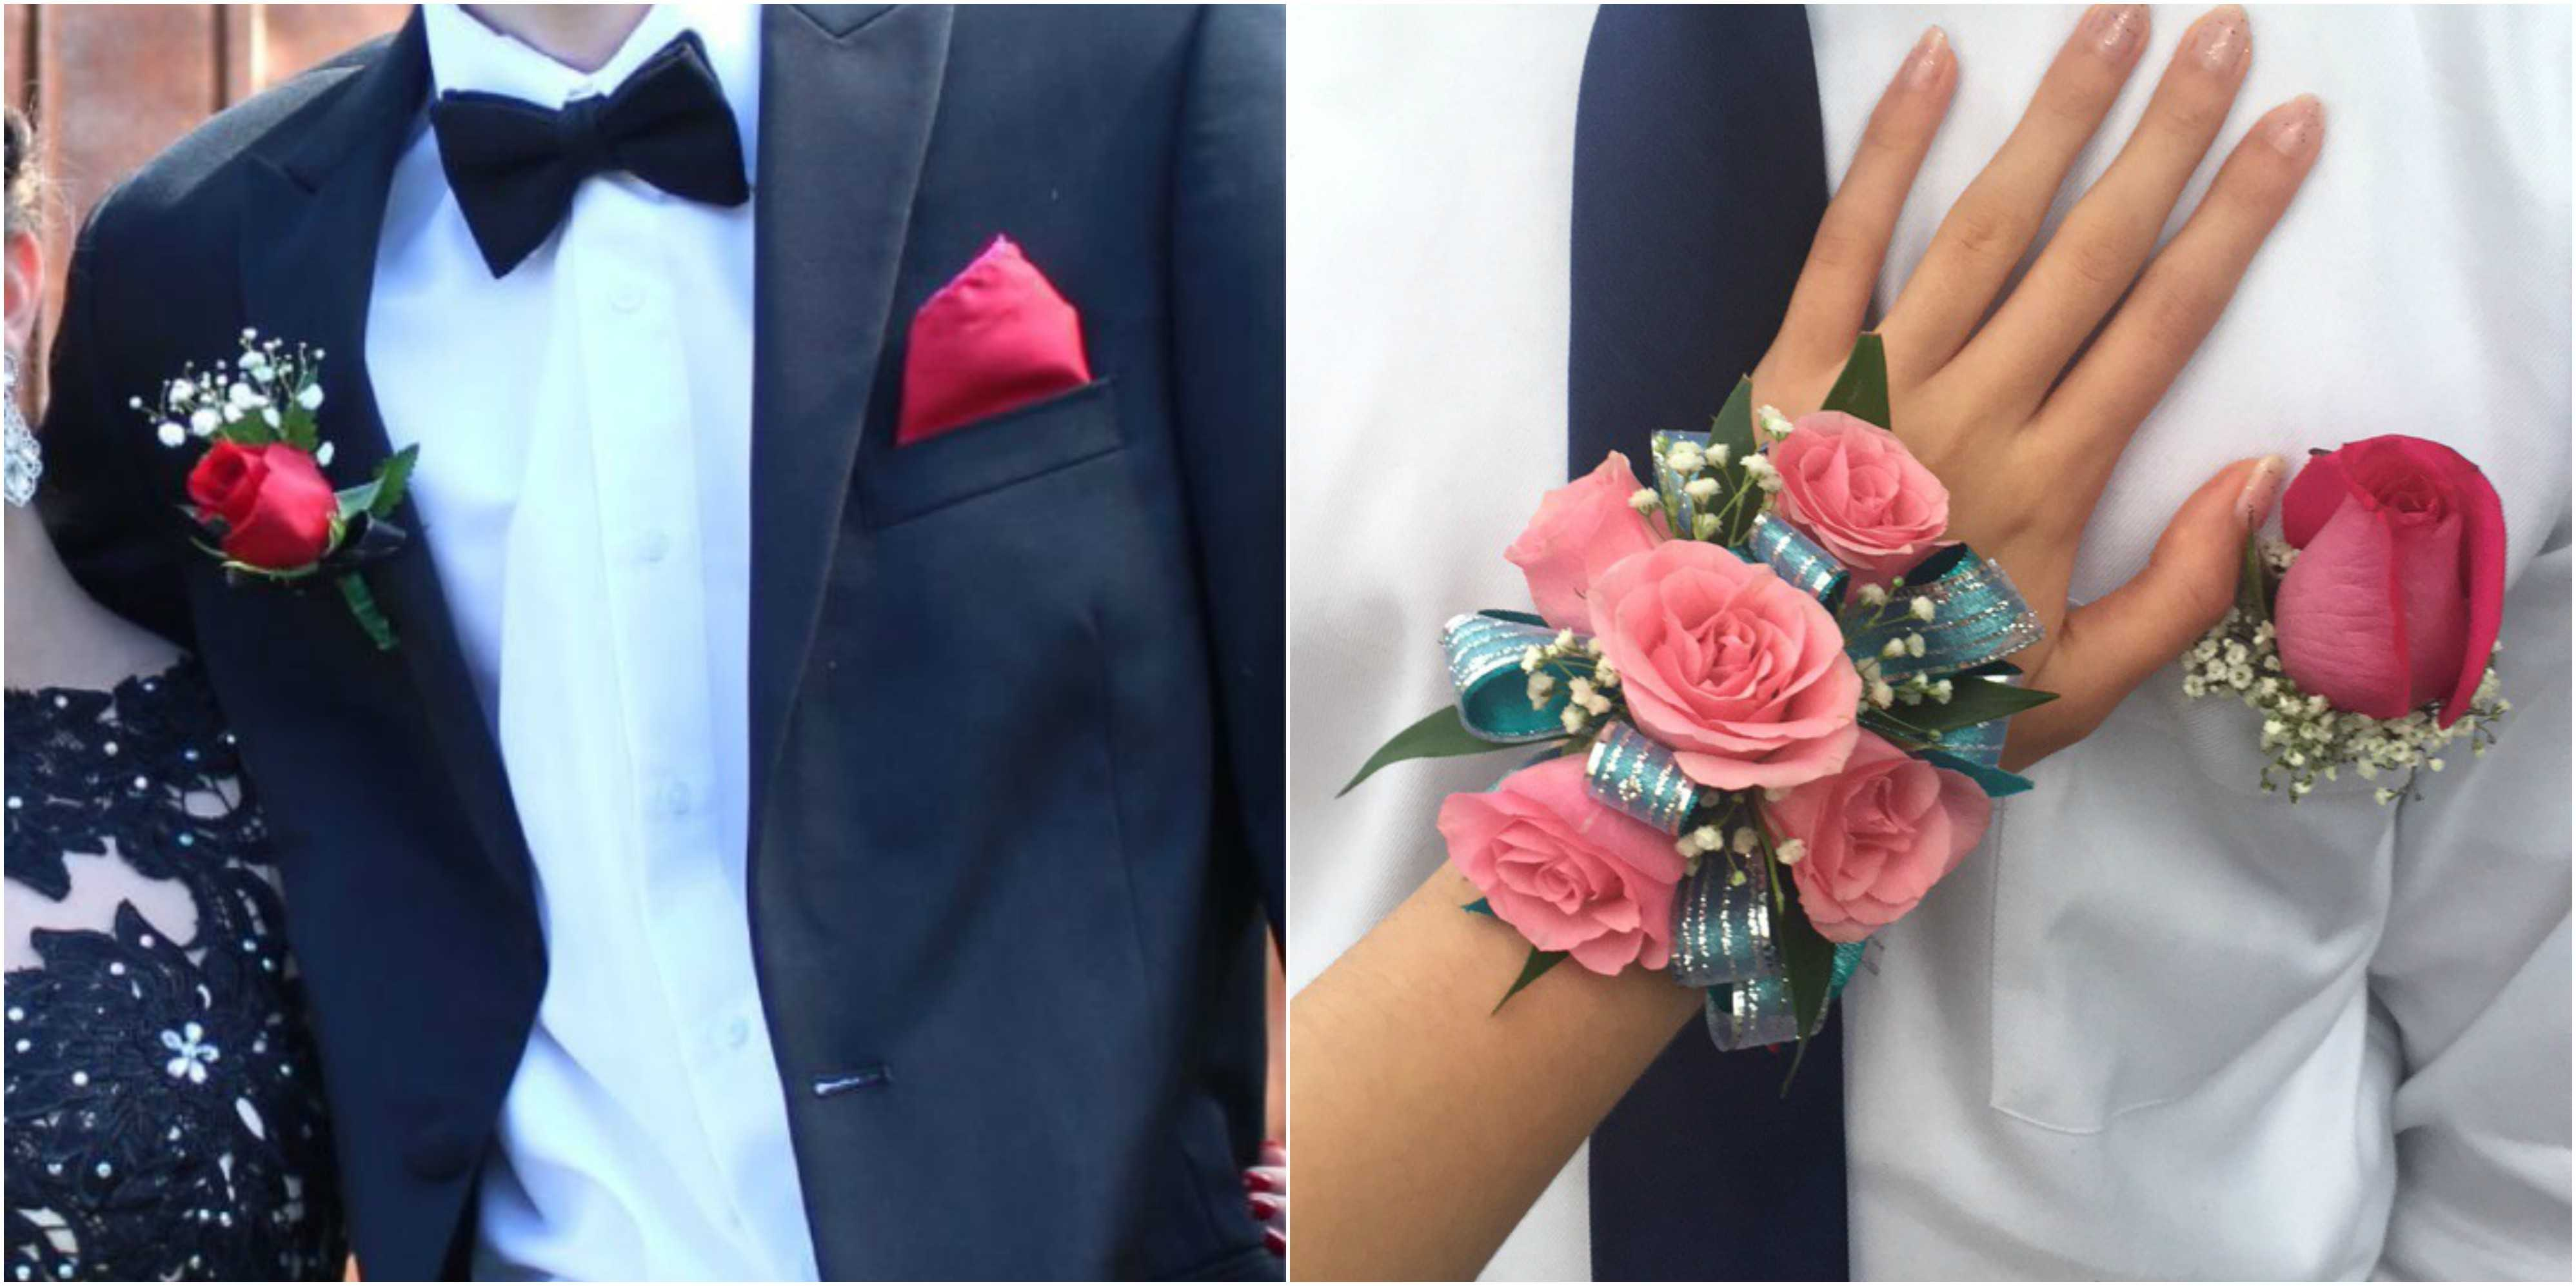 The corsage and boutonniere on the right from Kennesaw Florist include pink roses, blue ribbon, green leaves, and baby's breath flower. Kroger made the left boutonniere and it includes a red rose, baby's breath flower, and green leaves that go great with a black tux.